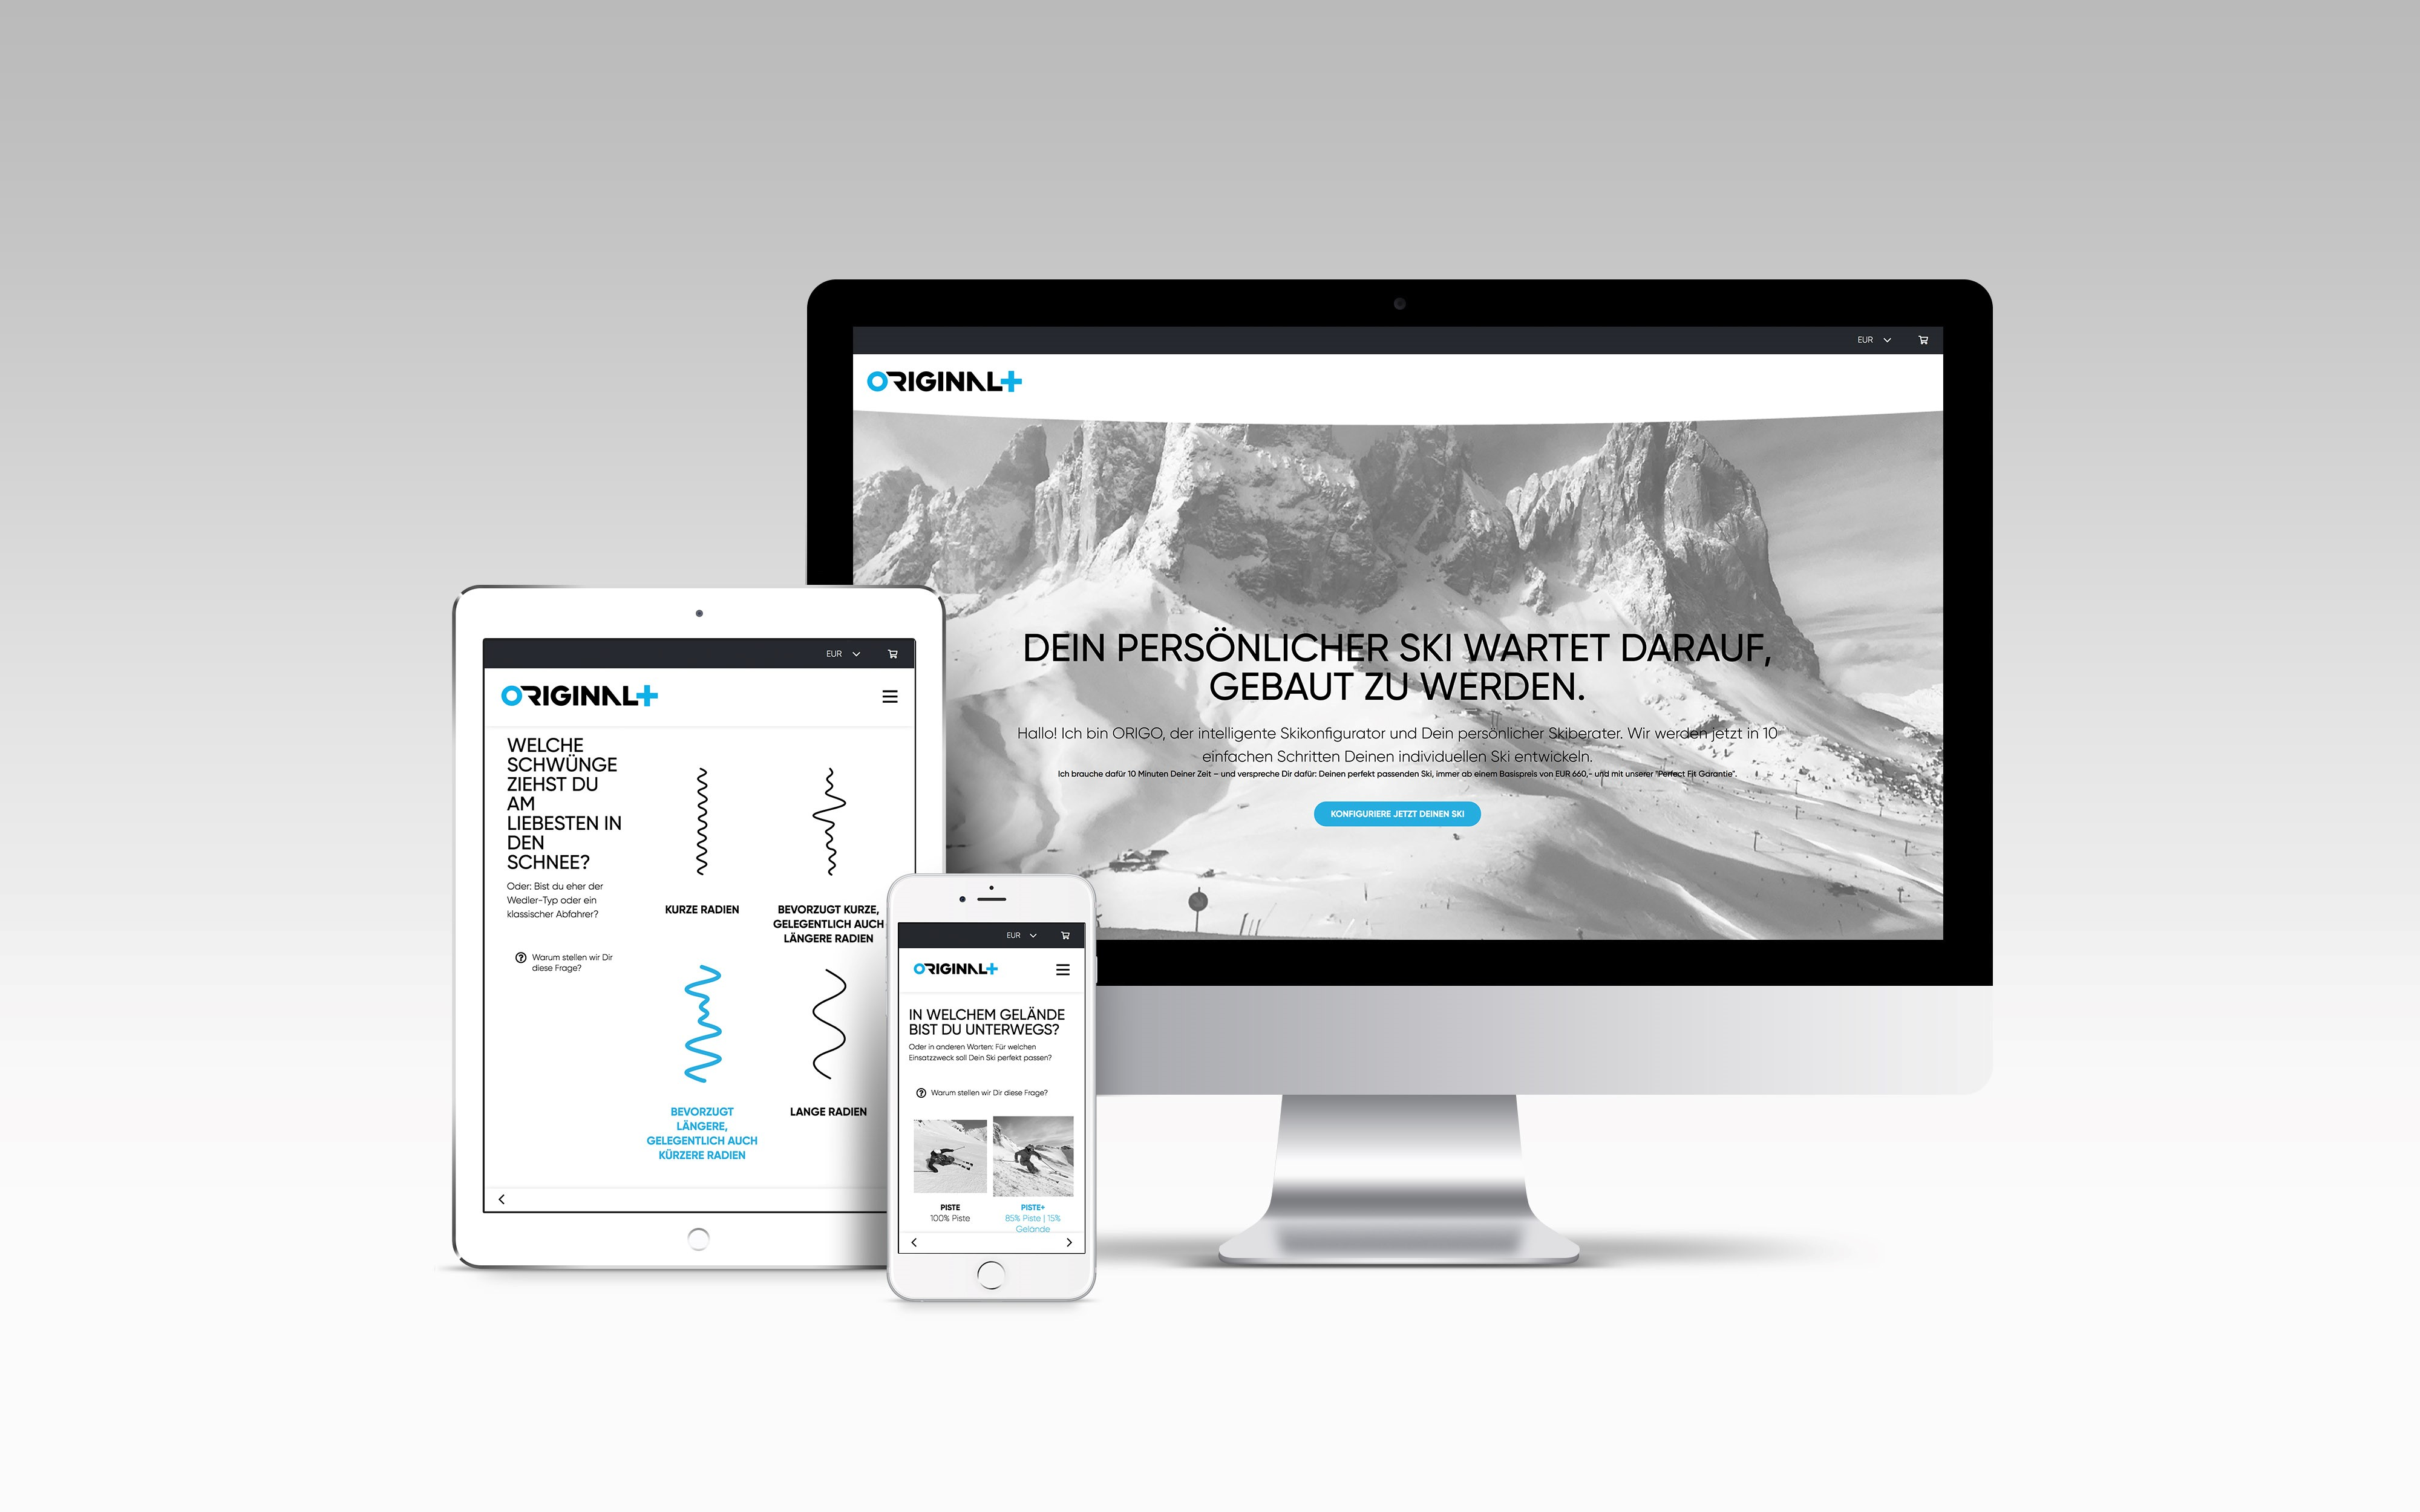 ORIGO, the digitale ski configurator at ORIGINAL+